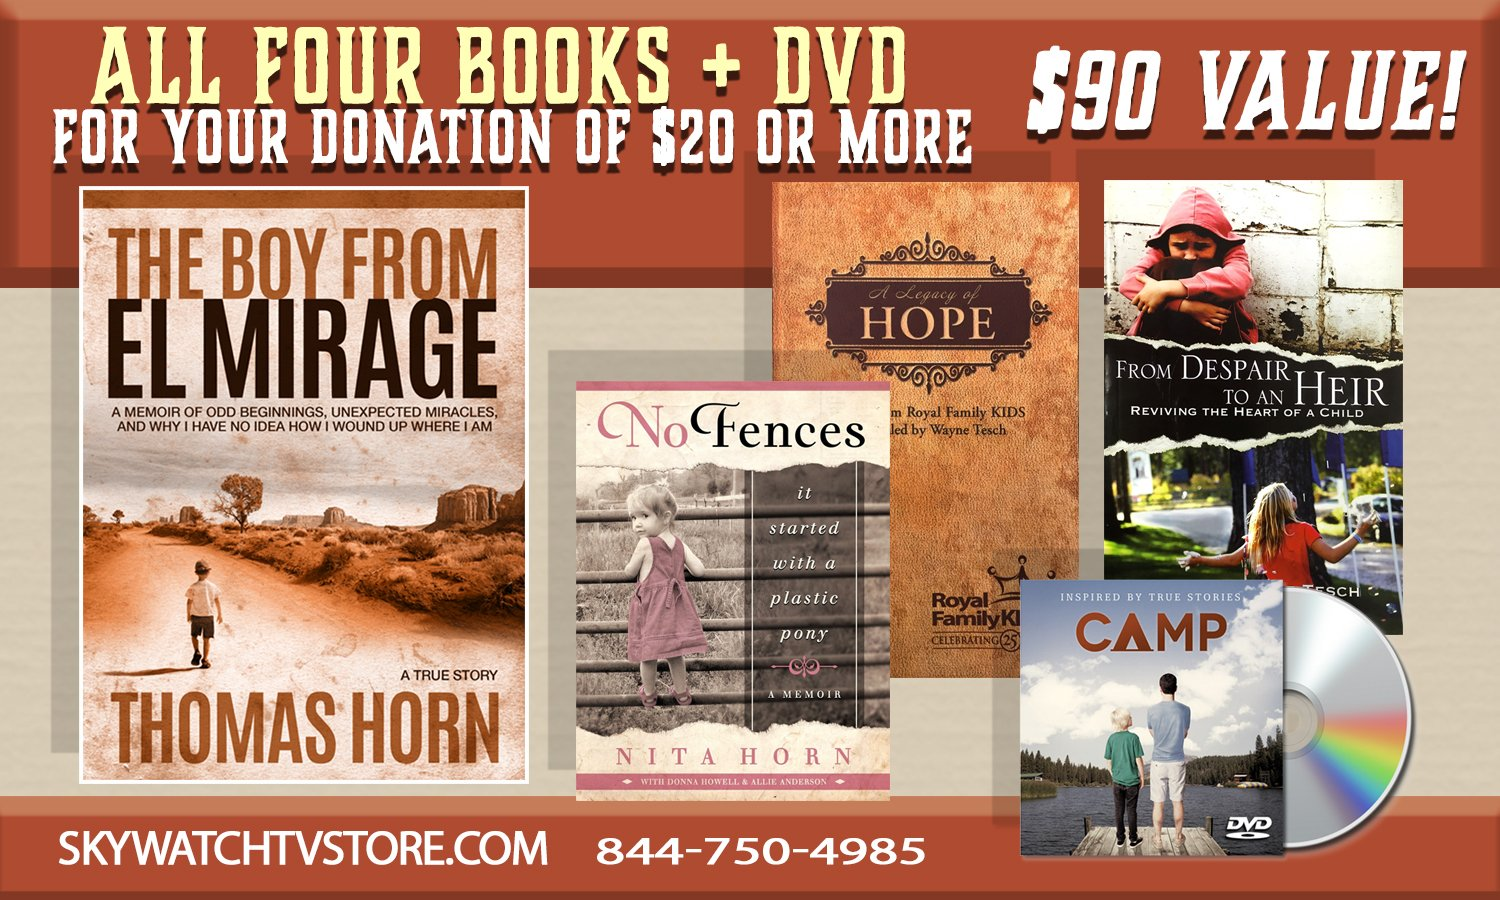 YOURS FOR ANY DONATION OF $20.00 OR MORE — LEARN THE SECRET TRUE STORY BEHIND DR. THOMAS HORN'S LIFE PLUS RECEIVE 4 BOOKS & DVD MOVIE!